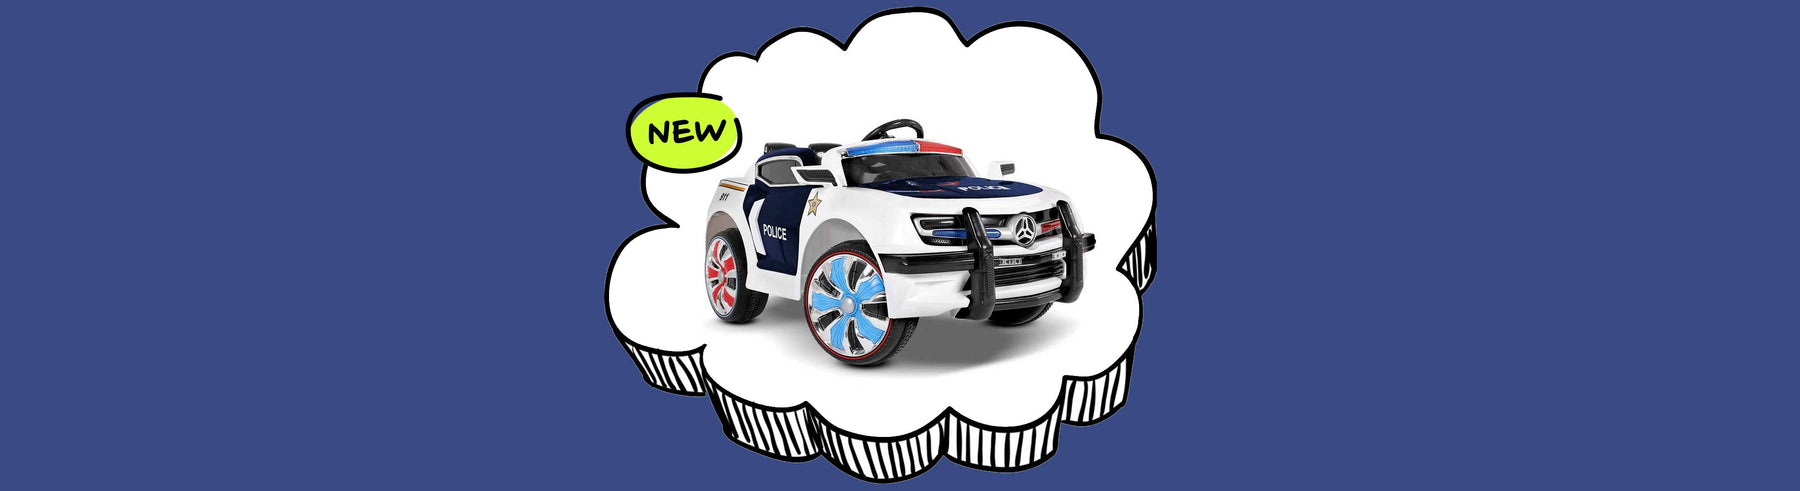 Ford Explorer Police Inspired Kids Ride On Car with Remote Control